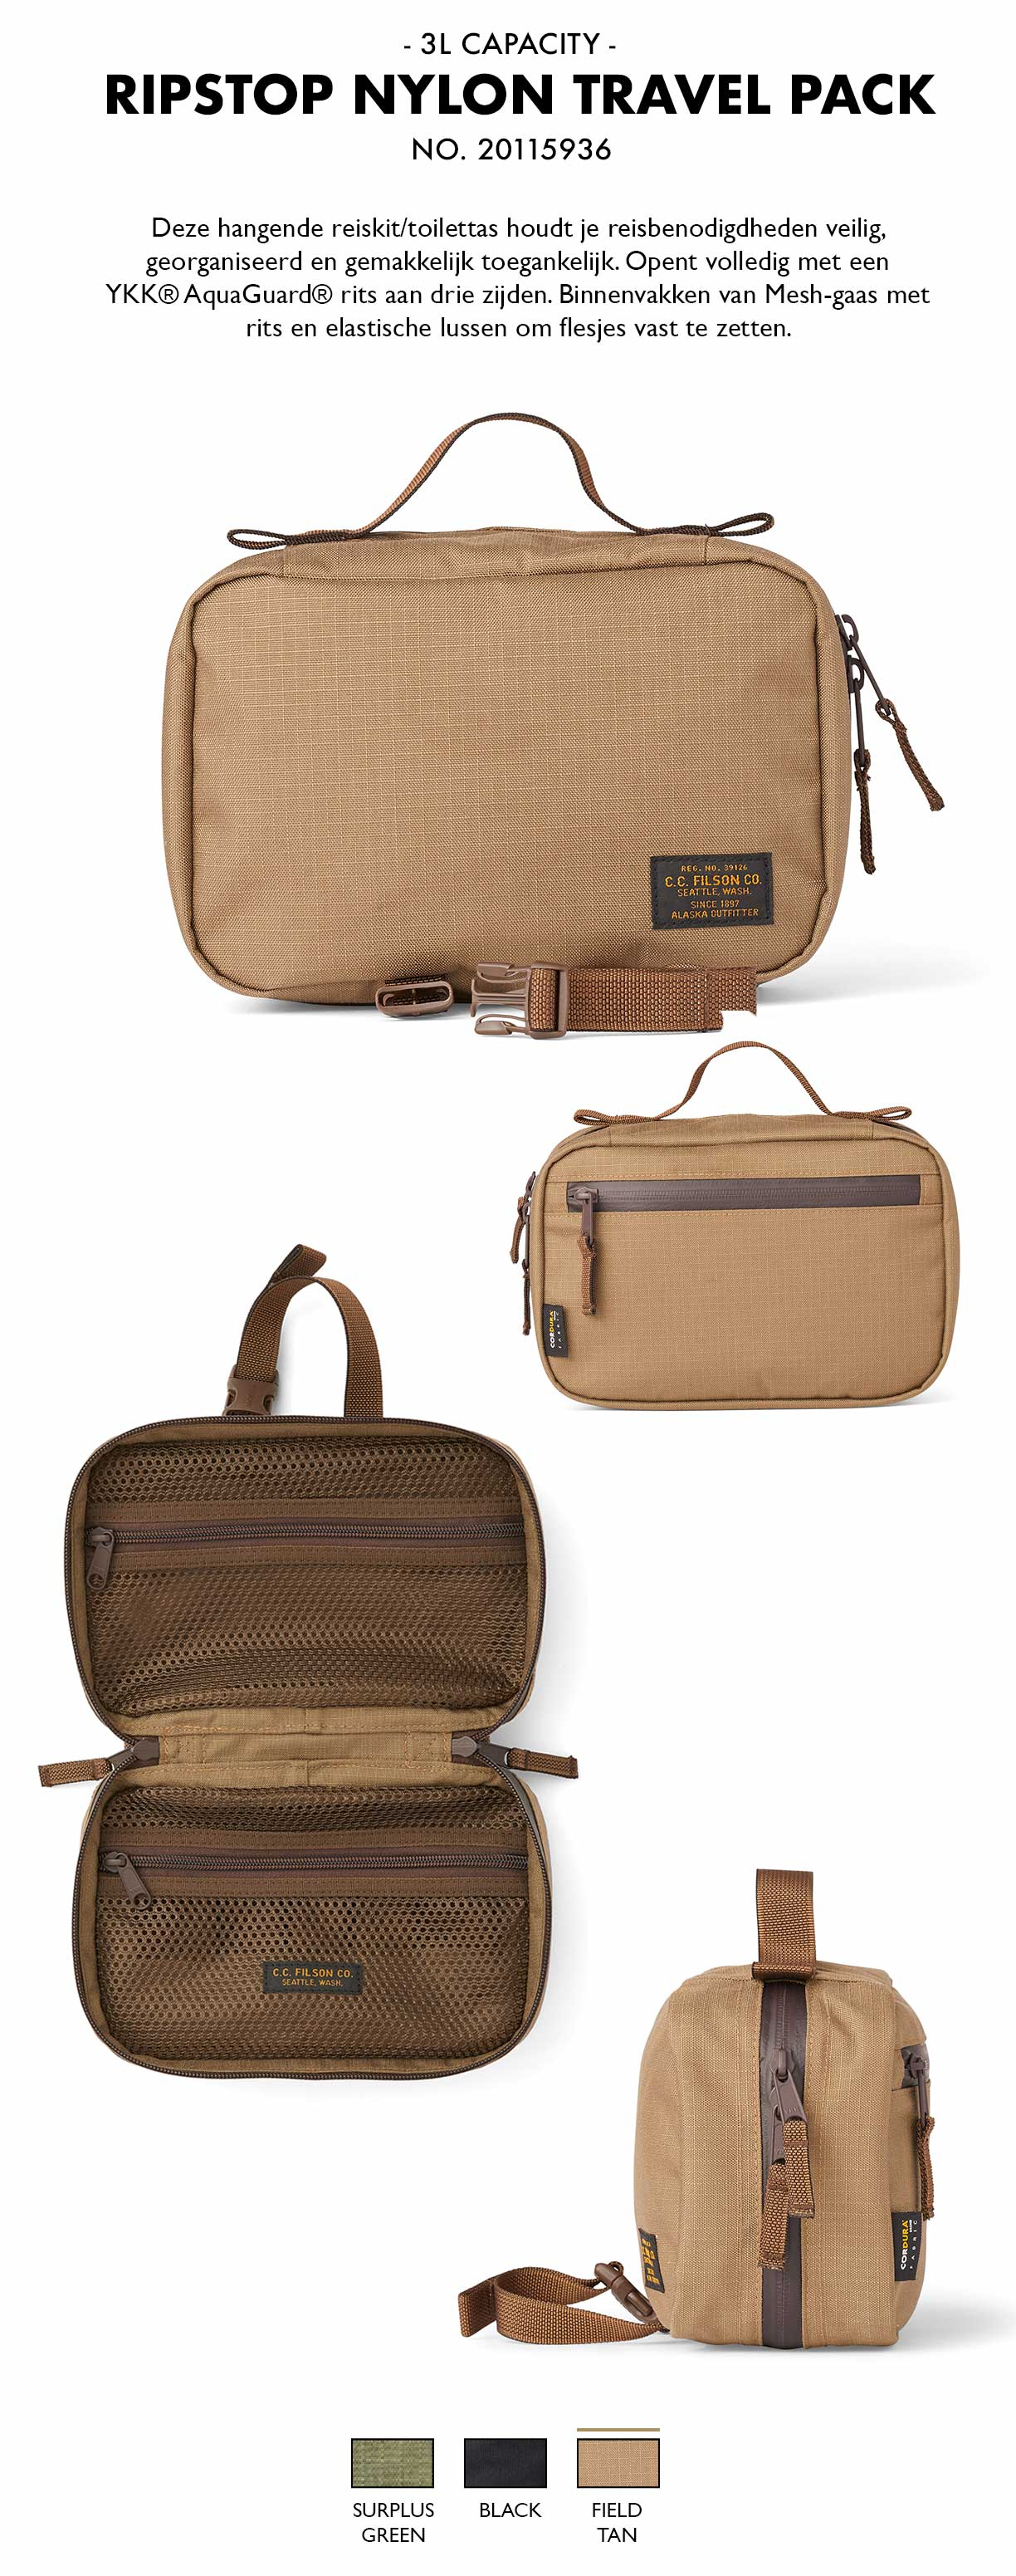 Filson Ripstop Nylon Travel Pack Field Tan Product-informatie